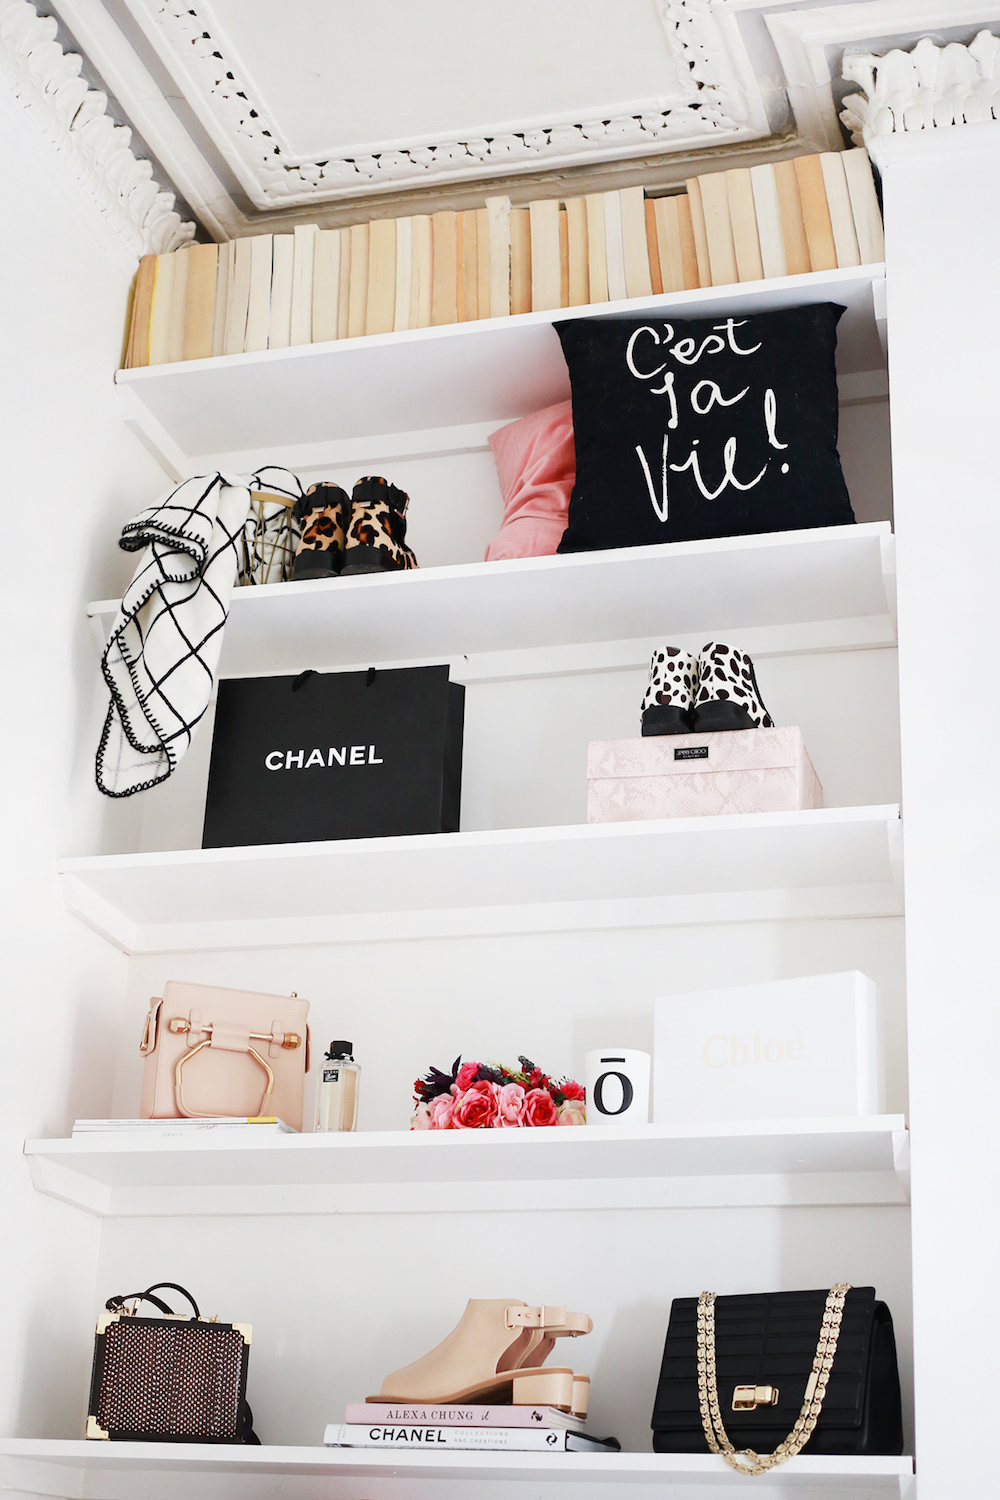 Shelving in Kate La Vie's Apartment